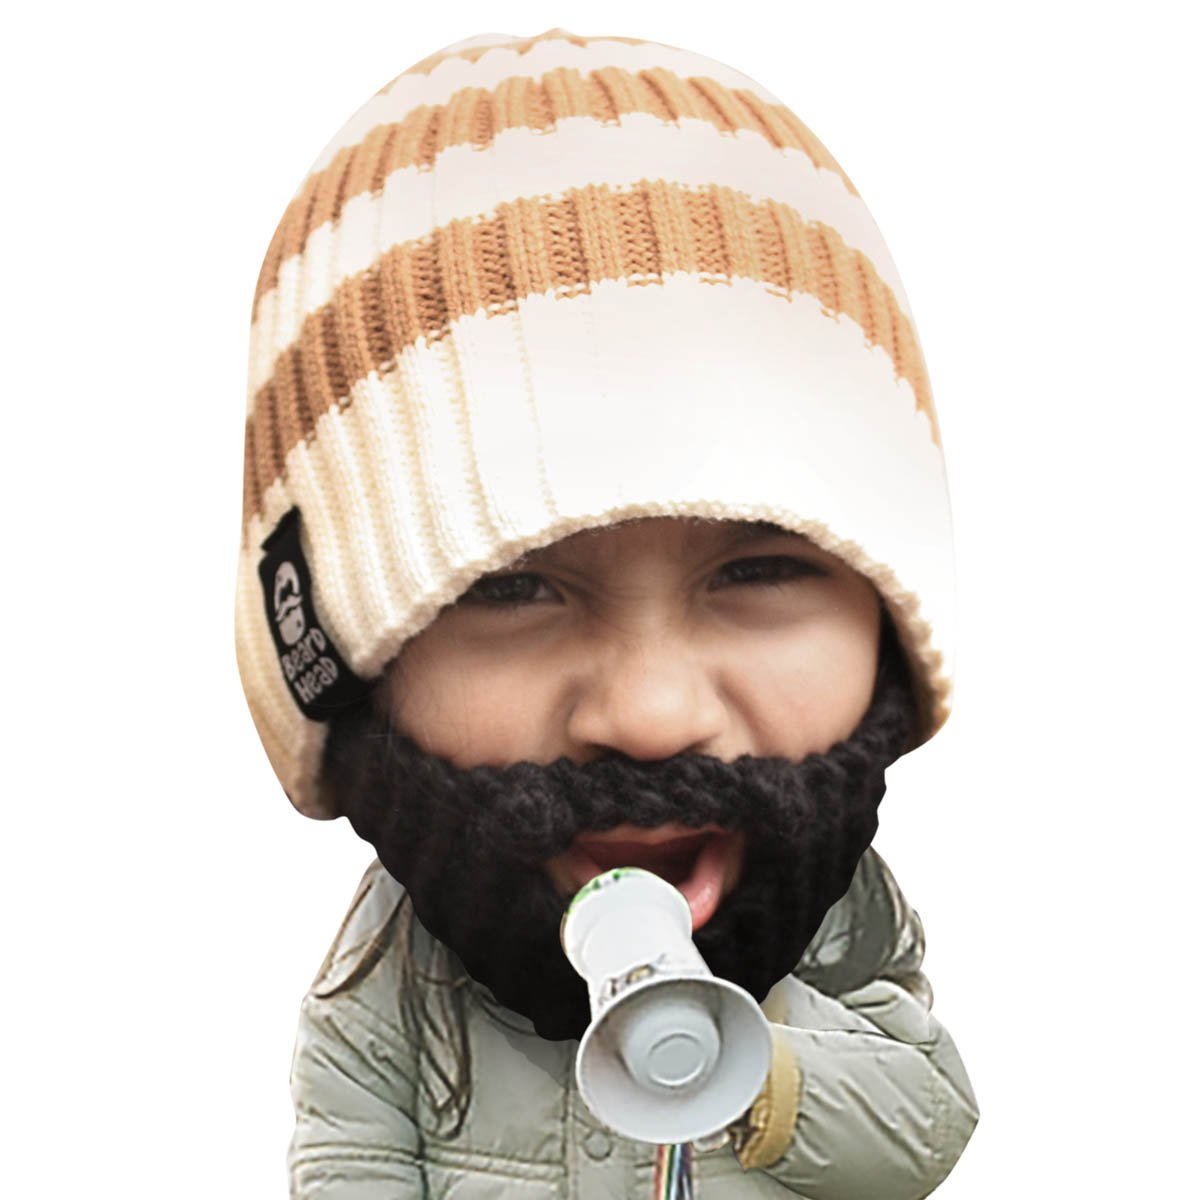 Amazon.com  Beard Head Kid Scruggler Beard Beanie -Knit Hat and Fake Beard  for Kids Toddlers Black  Infant And Toddler Hats  Clothing 5e772d3756f